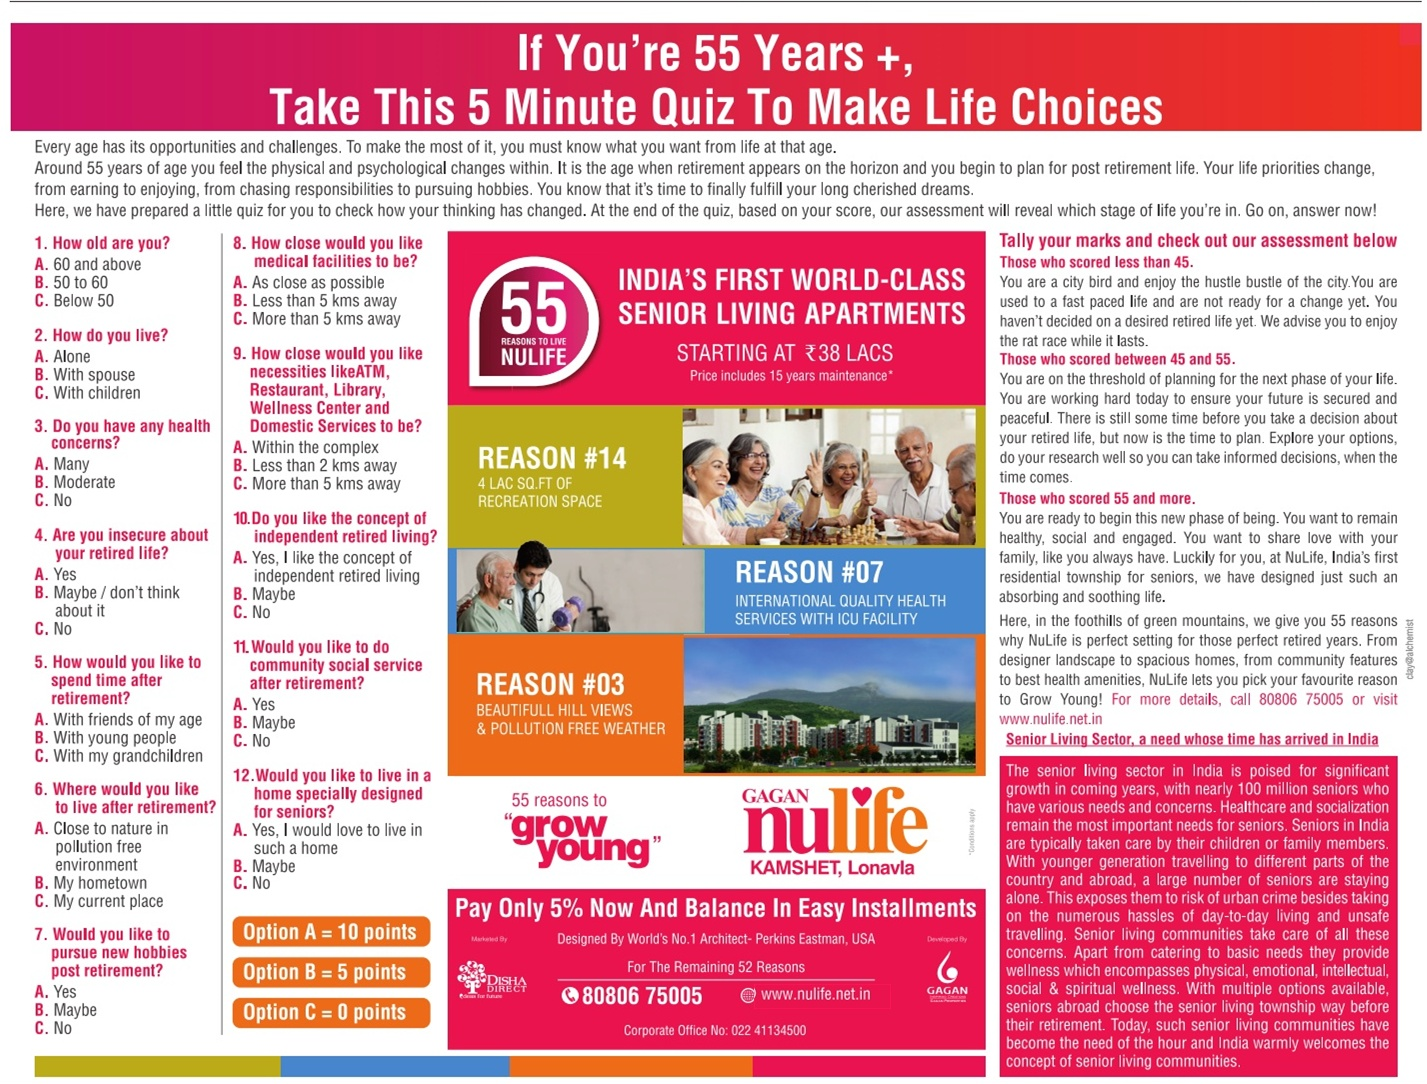 Gagan Nulife Advertisement in TOI Mumbai